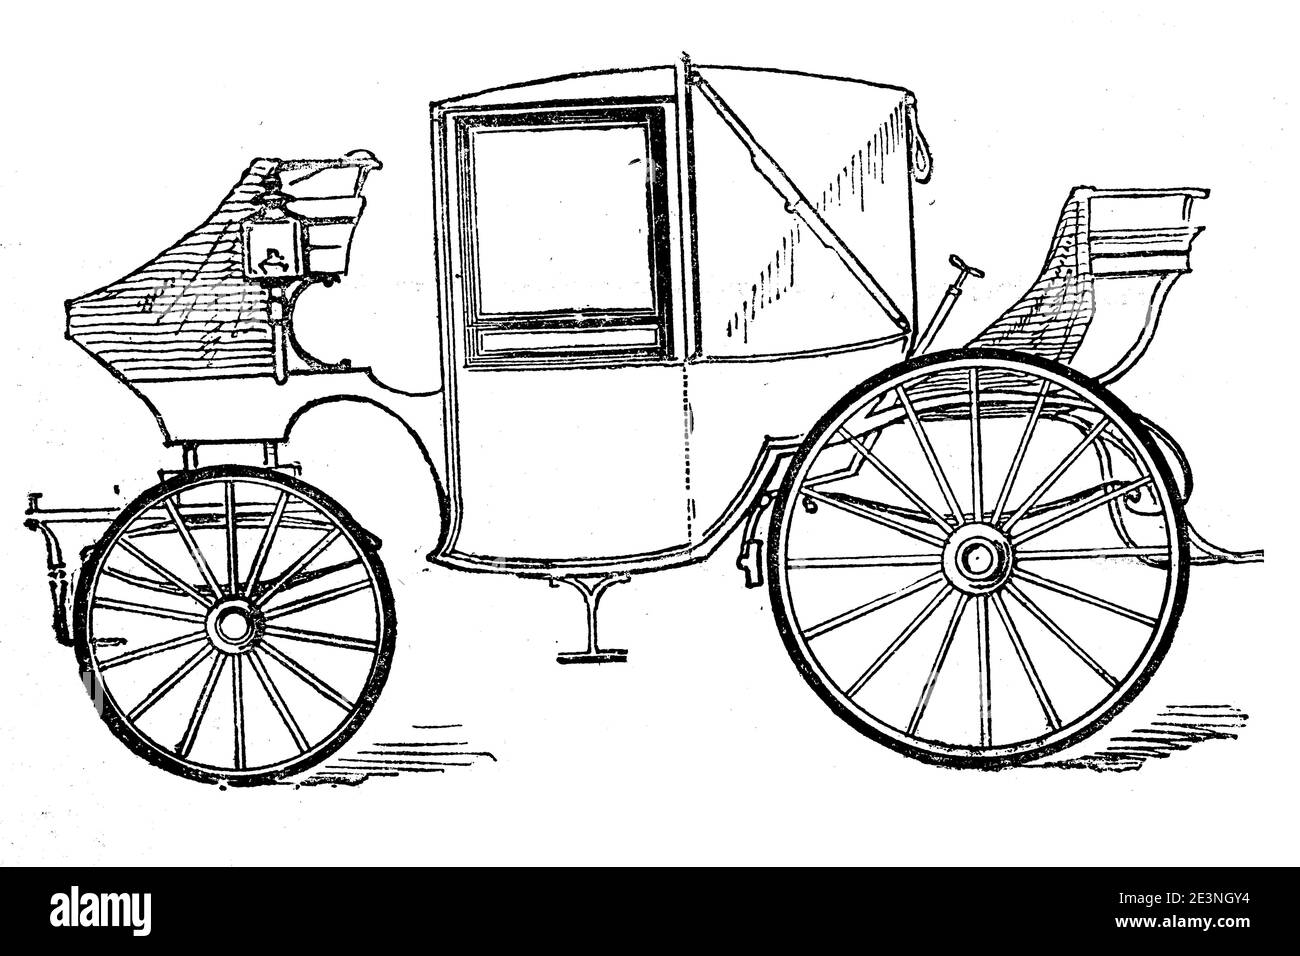 Landaulet High Resolution Stock Photography And Images Alamy